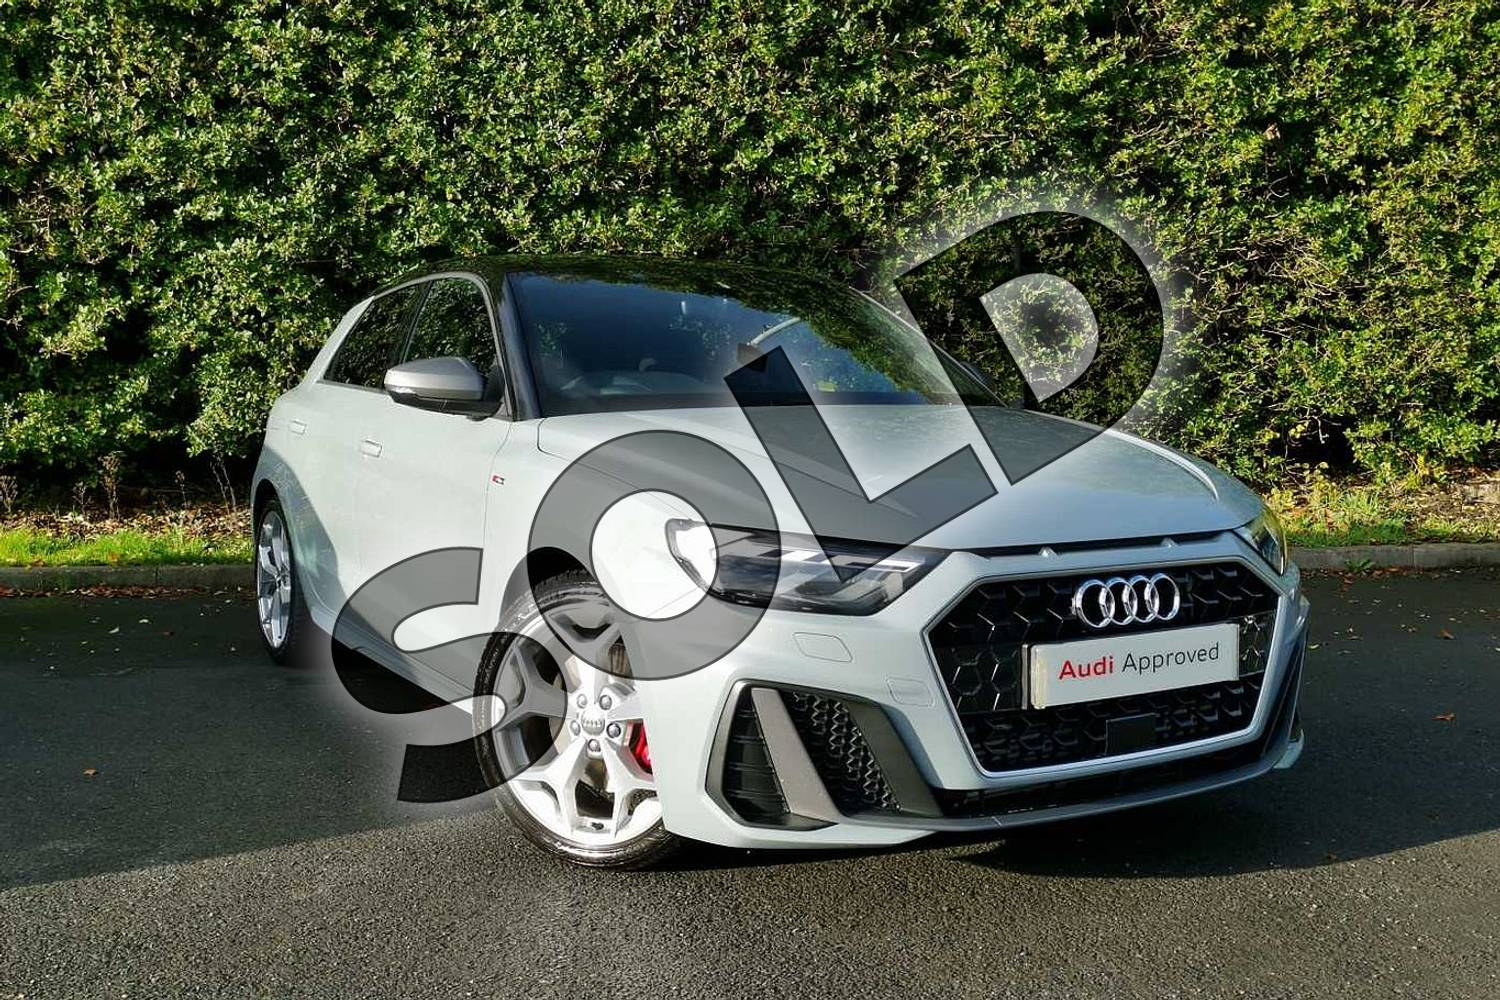 2020 Audi A1 Sportback 40 TFSI S Line Competition 5dr S Tronic in Arrow Grey Pearlescent at Worcester Audi